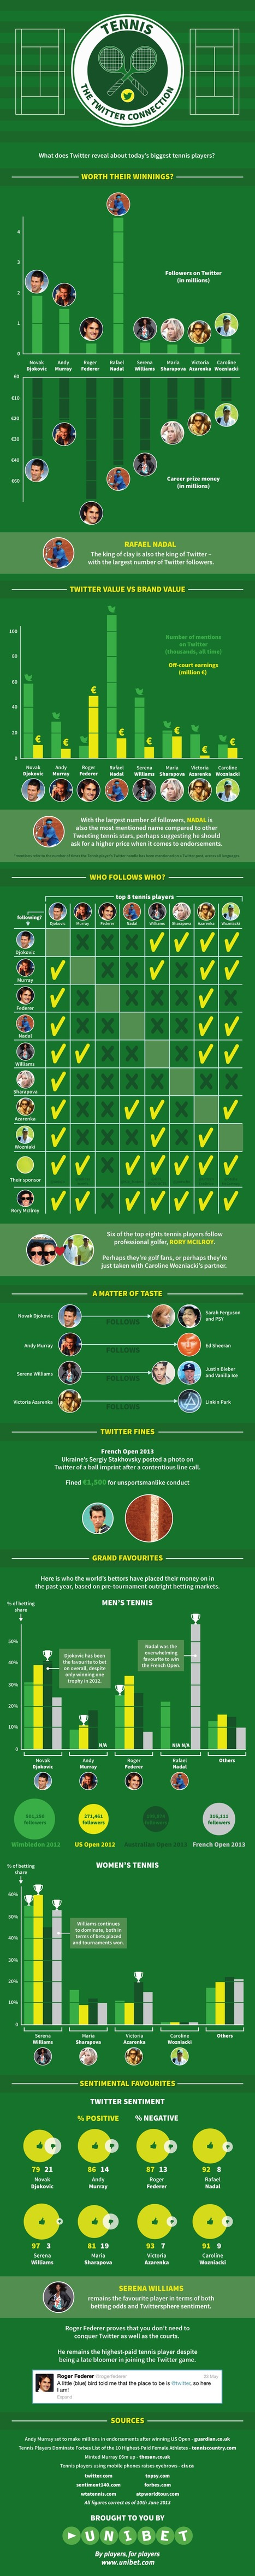 Tennis: The Twitter Connection [INFOGRAPHIC] - AllTwitter | Wimbledon | Scoop.it